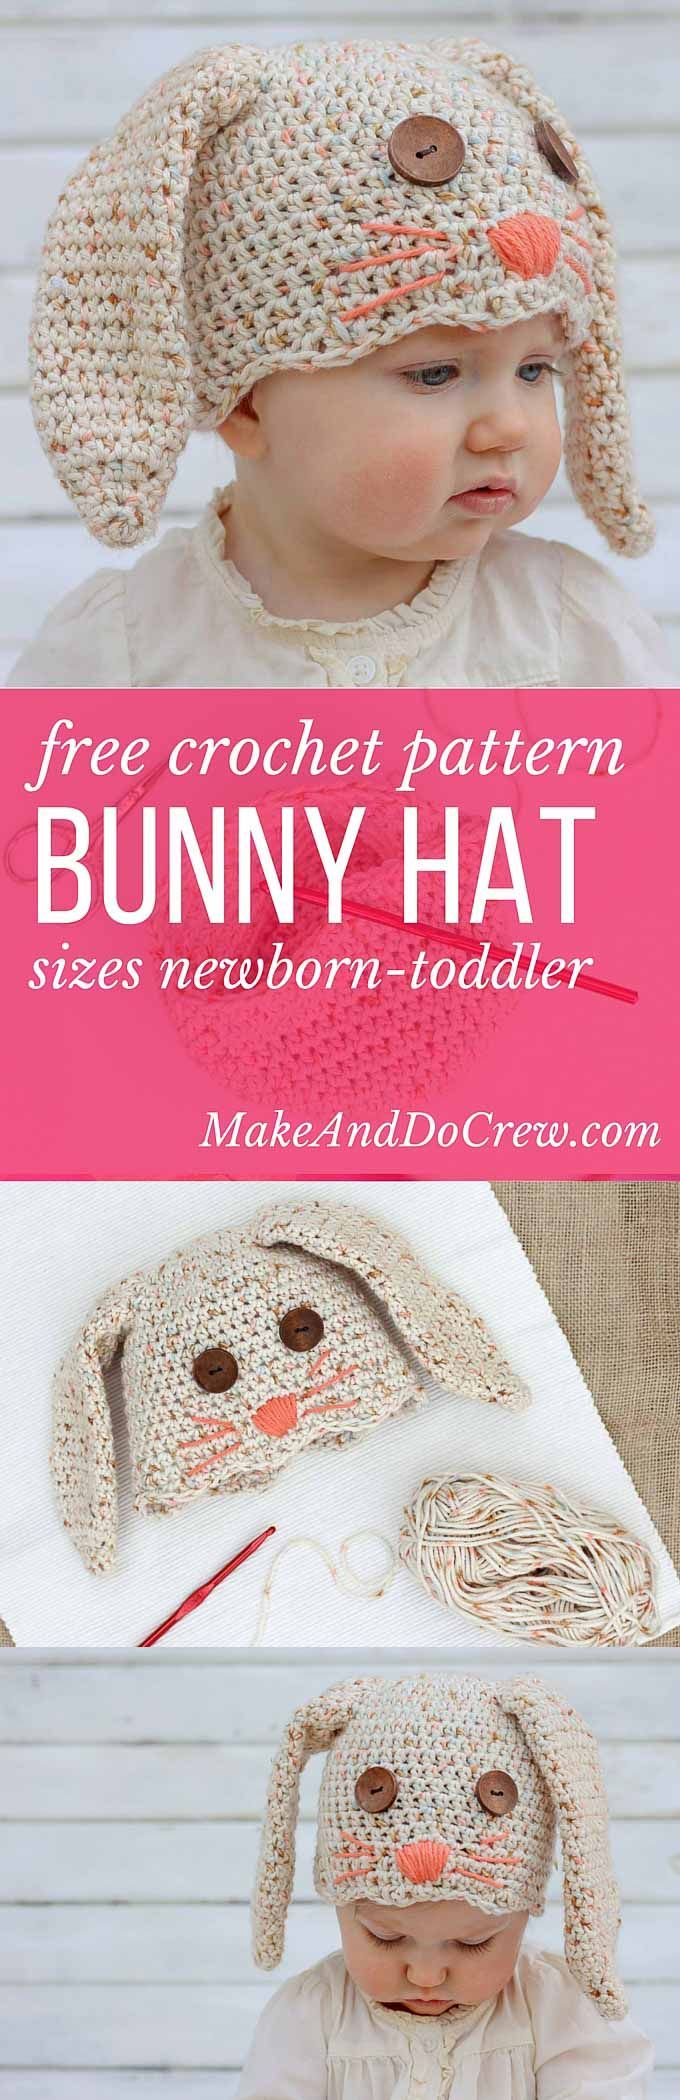 This free crochet bunny hat pattern makes a darling DIY Easter gift for your favorite baby or toddler. Sizes newborn, 3-6 months, 6-12 months, toddler/preschooler. Pair with our free crochet carrot baby toy pattern. Click for free pattern. | MakeAndDoCrew.com